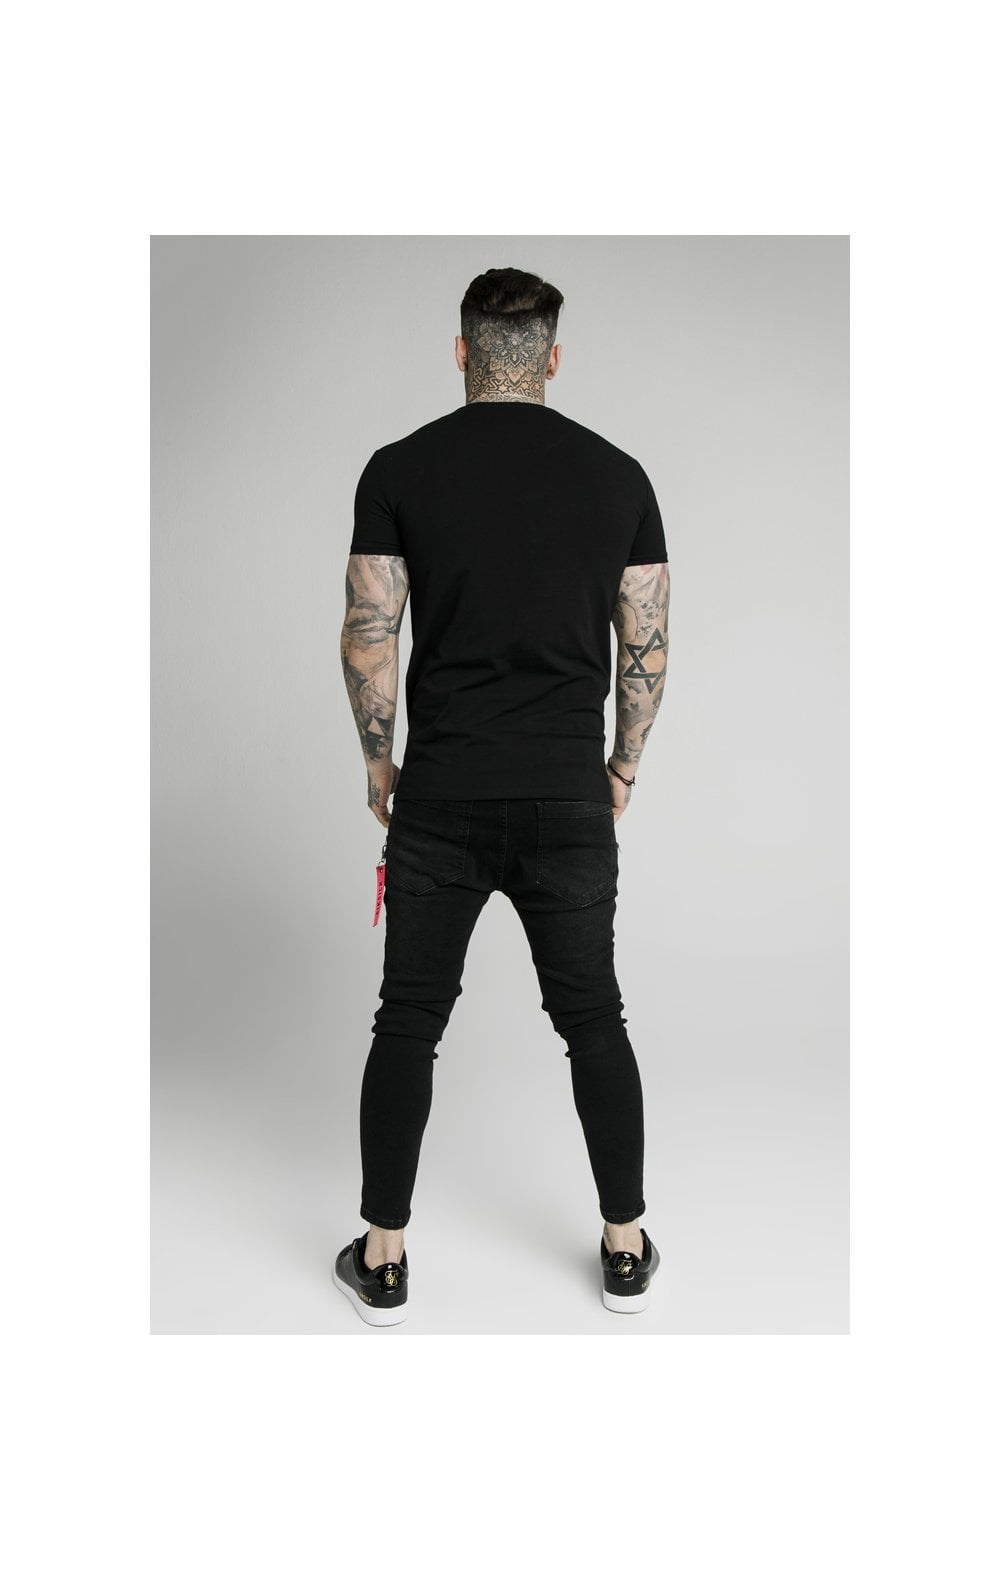 Load image into Gallery viewer, SikSilk S/S Fade Prestige Gym Tee - Black (4)